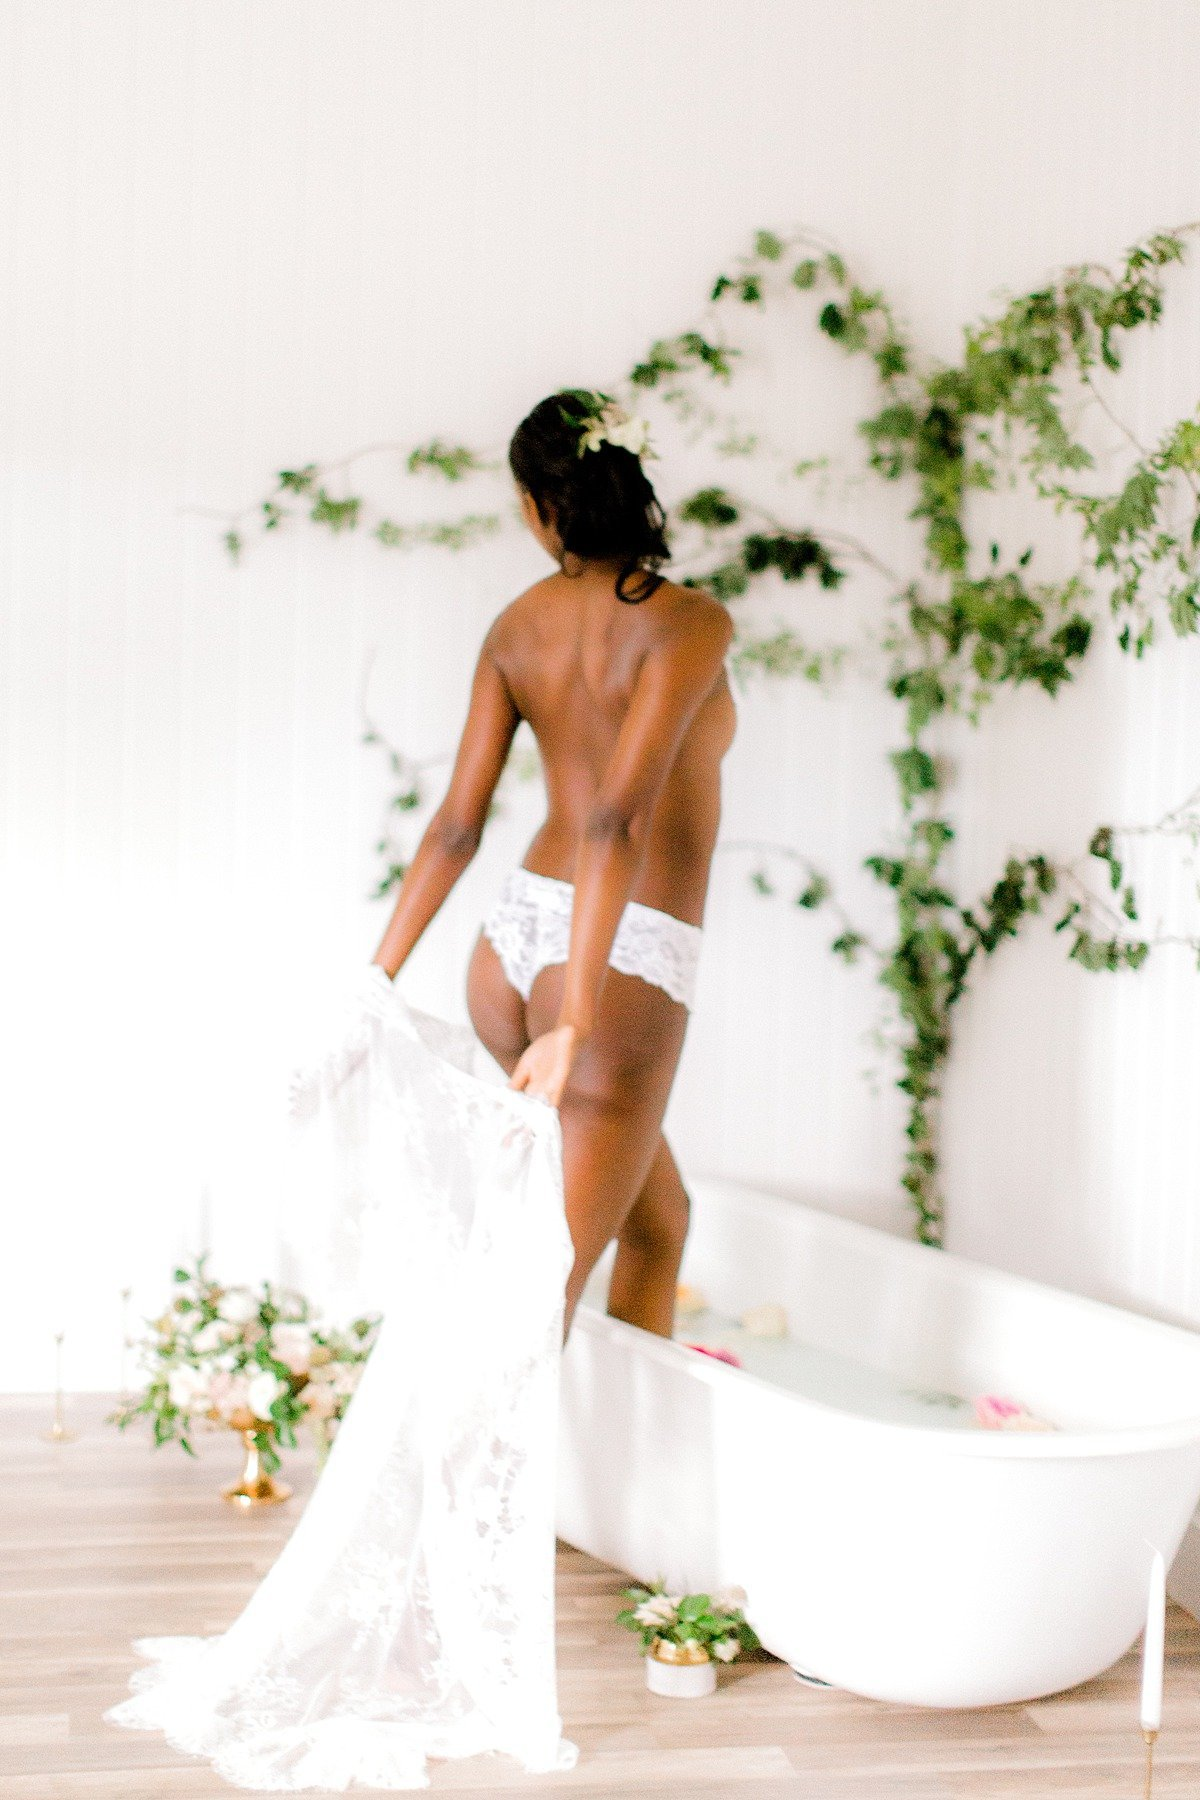 Fine Art Milk Bath Boudoir BHLDN Asos Lingerie VA Beach Studio Photographer Yours Truly Portraiture-110